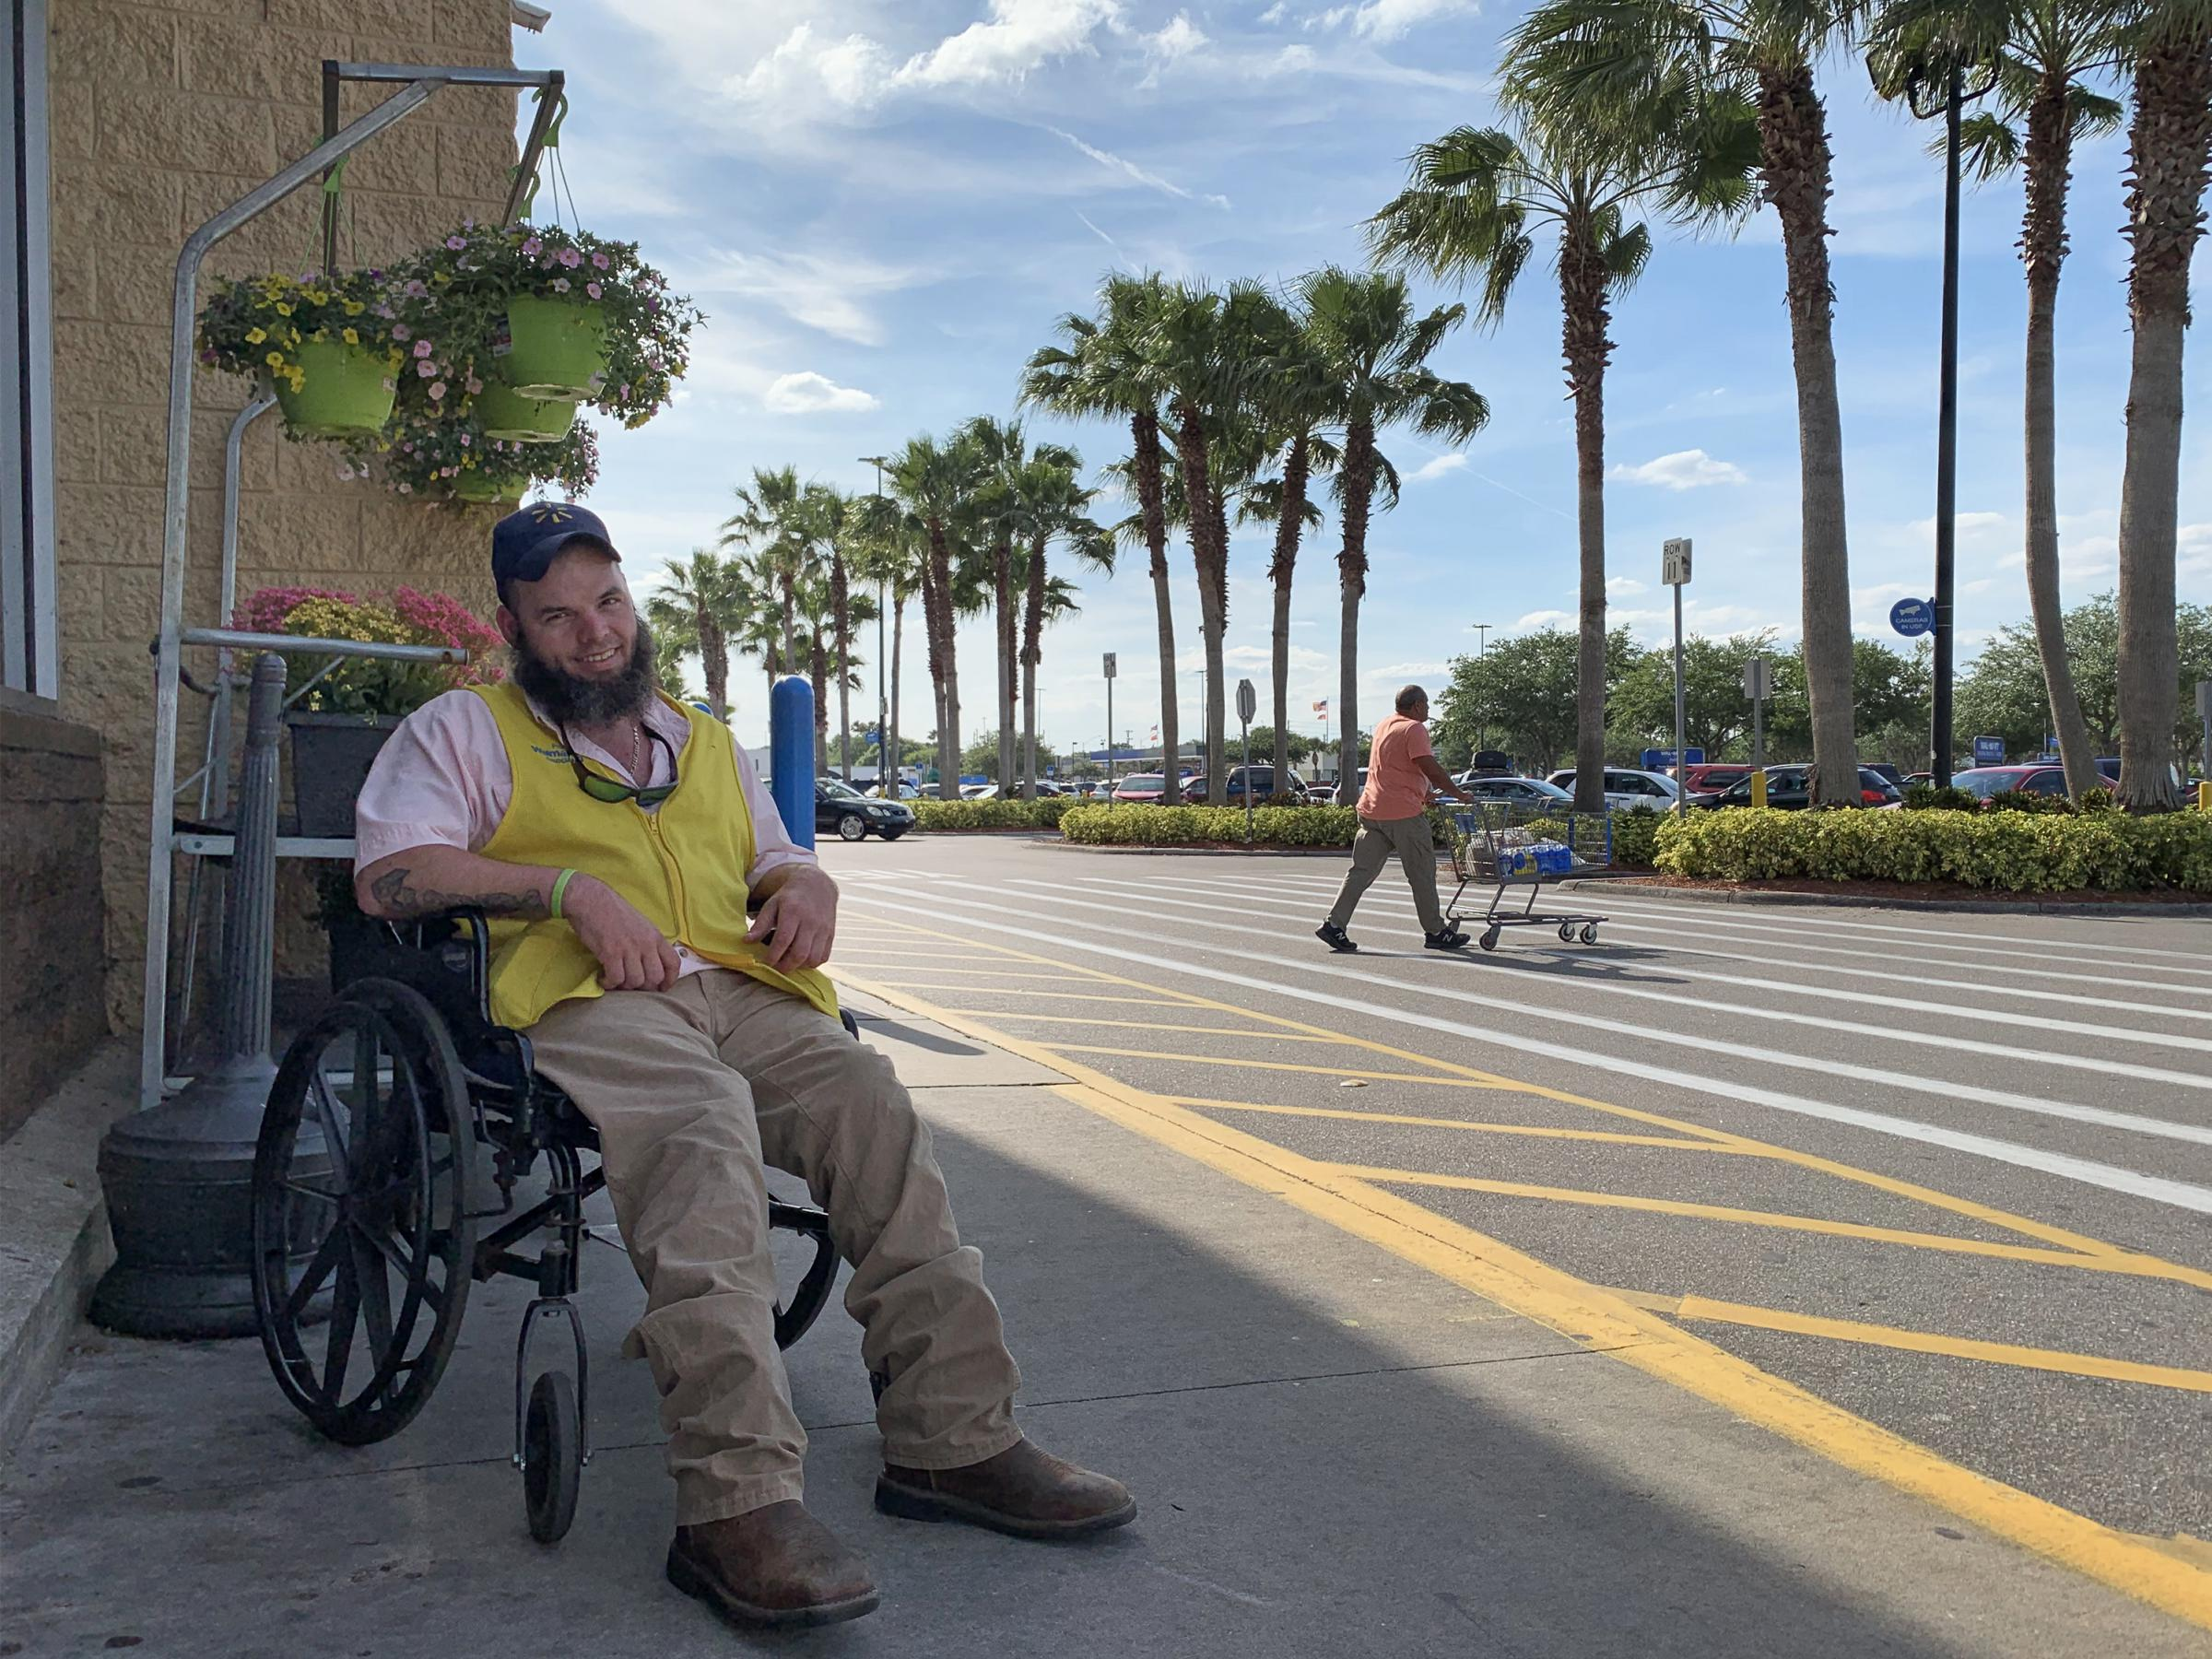 My Whole Life Is On Hold': As Walmart Eliminates Greeters, A